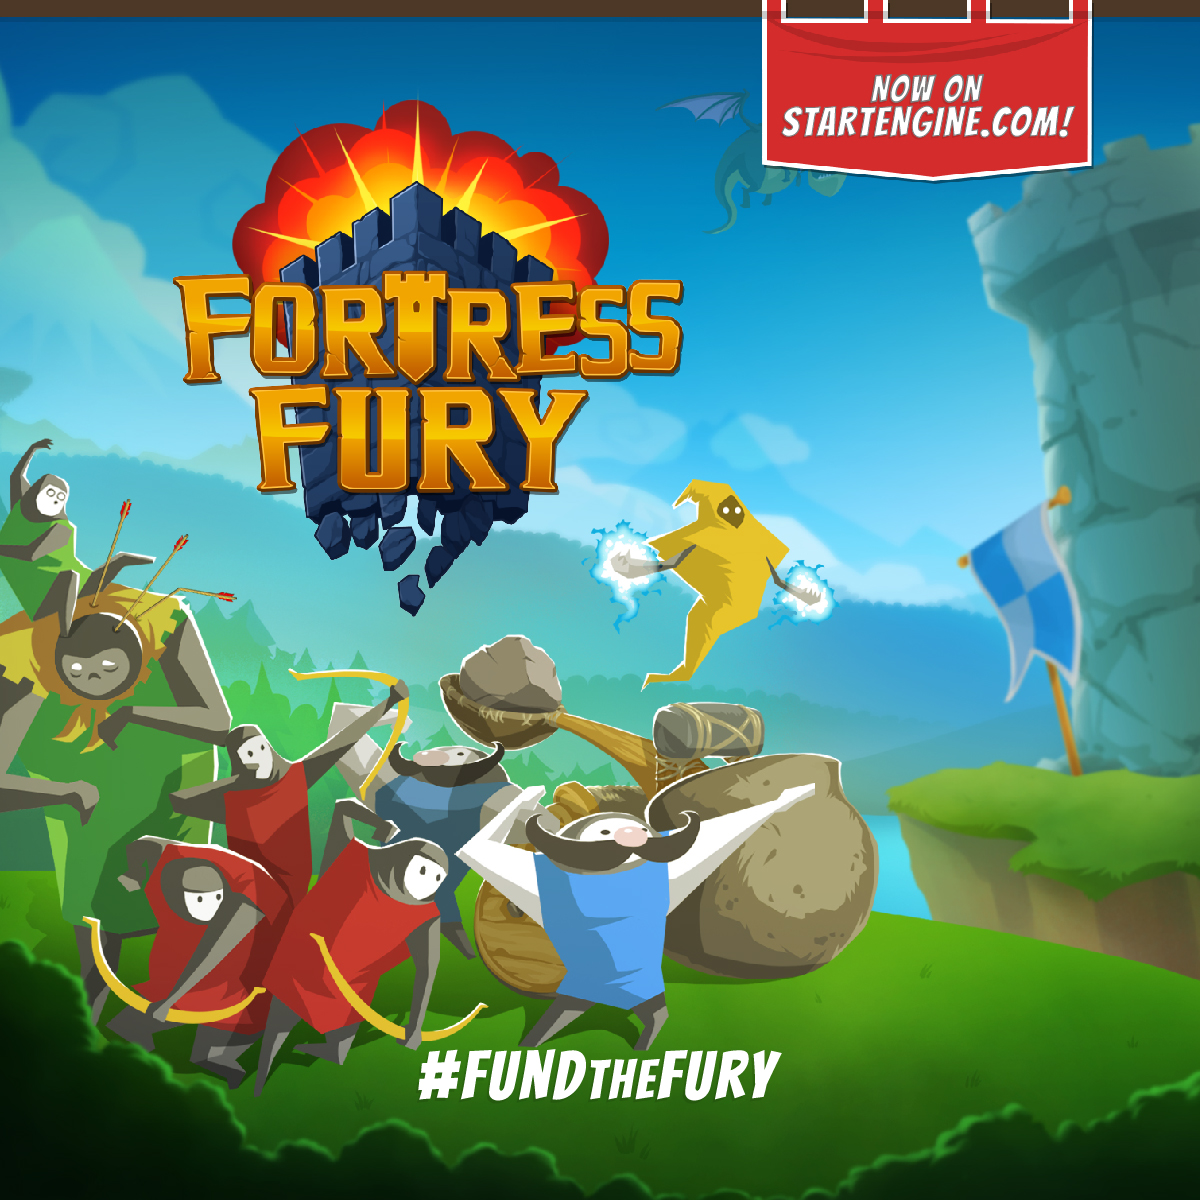 fundthefury fund the fury crowd funding